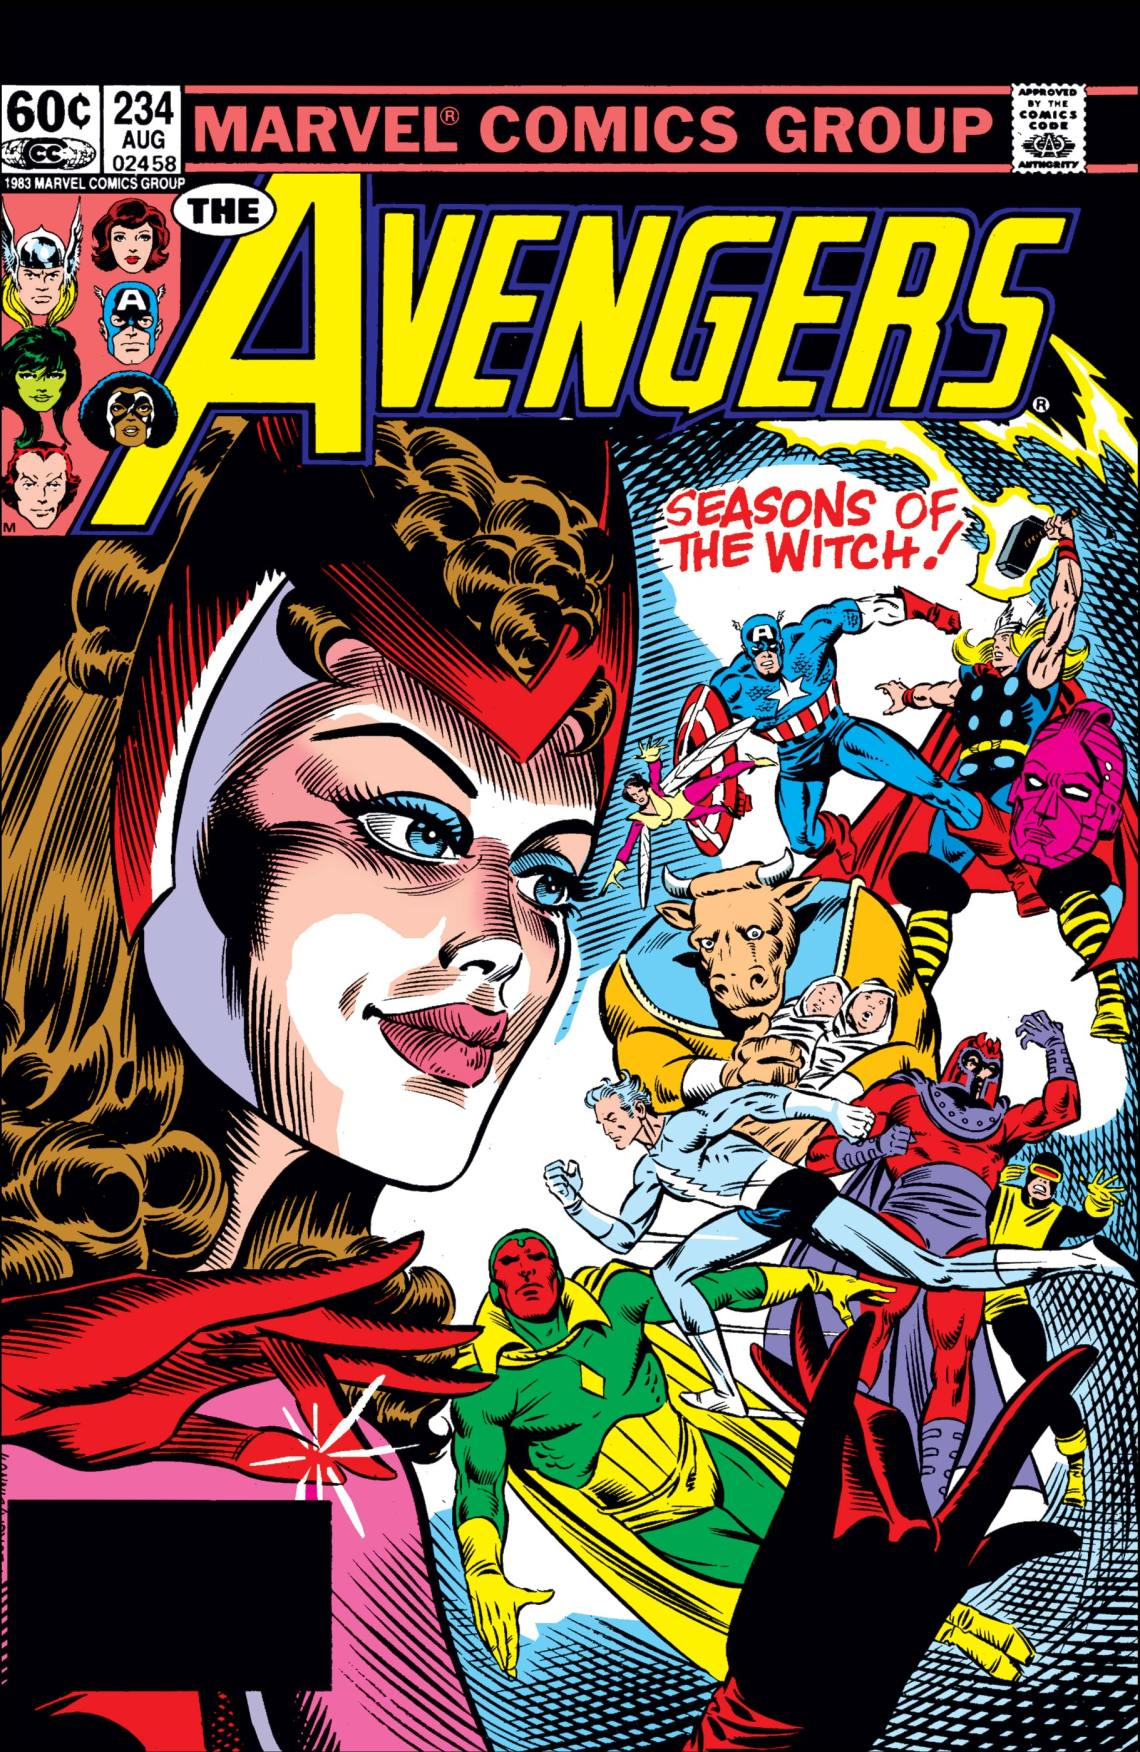 Avengers (1963) #234 | Comic Issues | Marvel